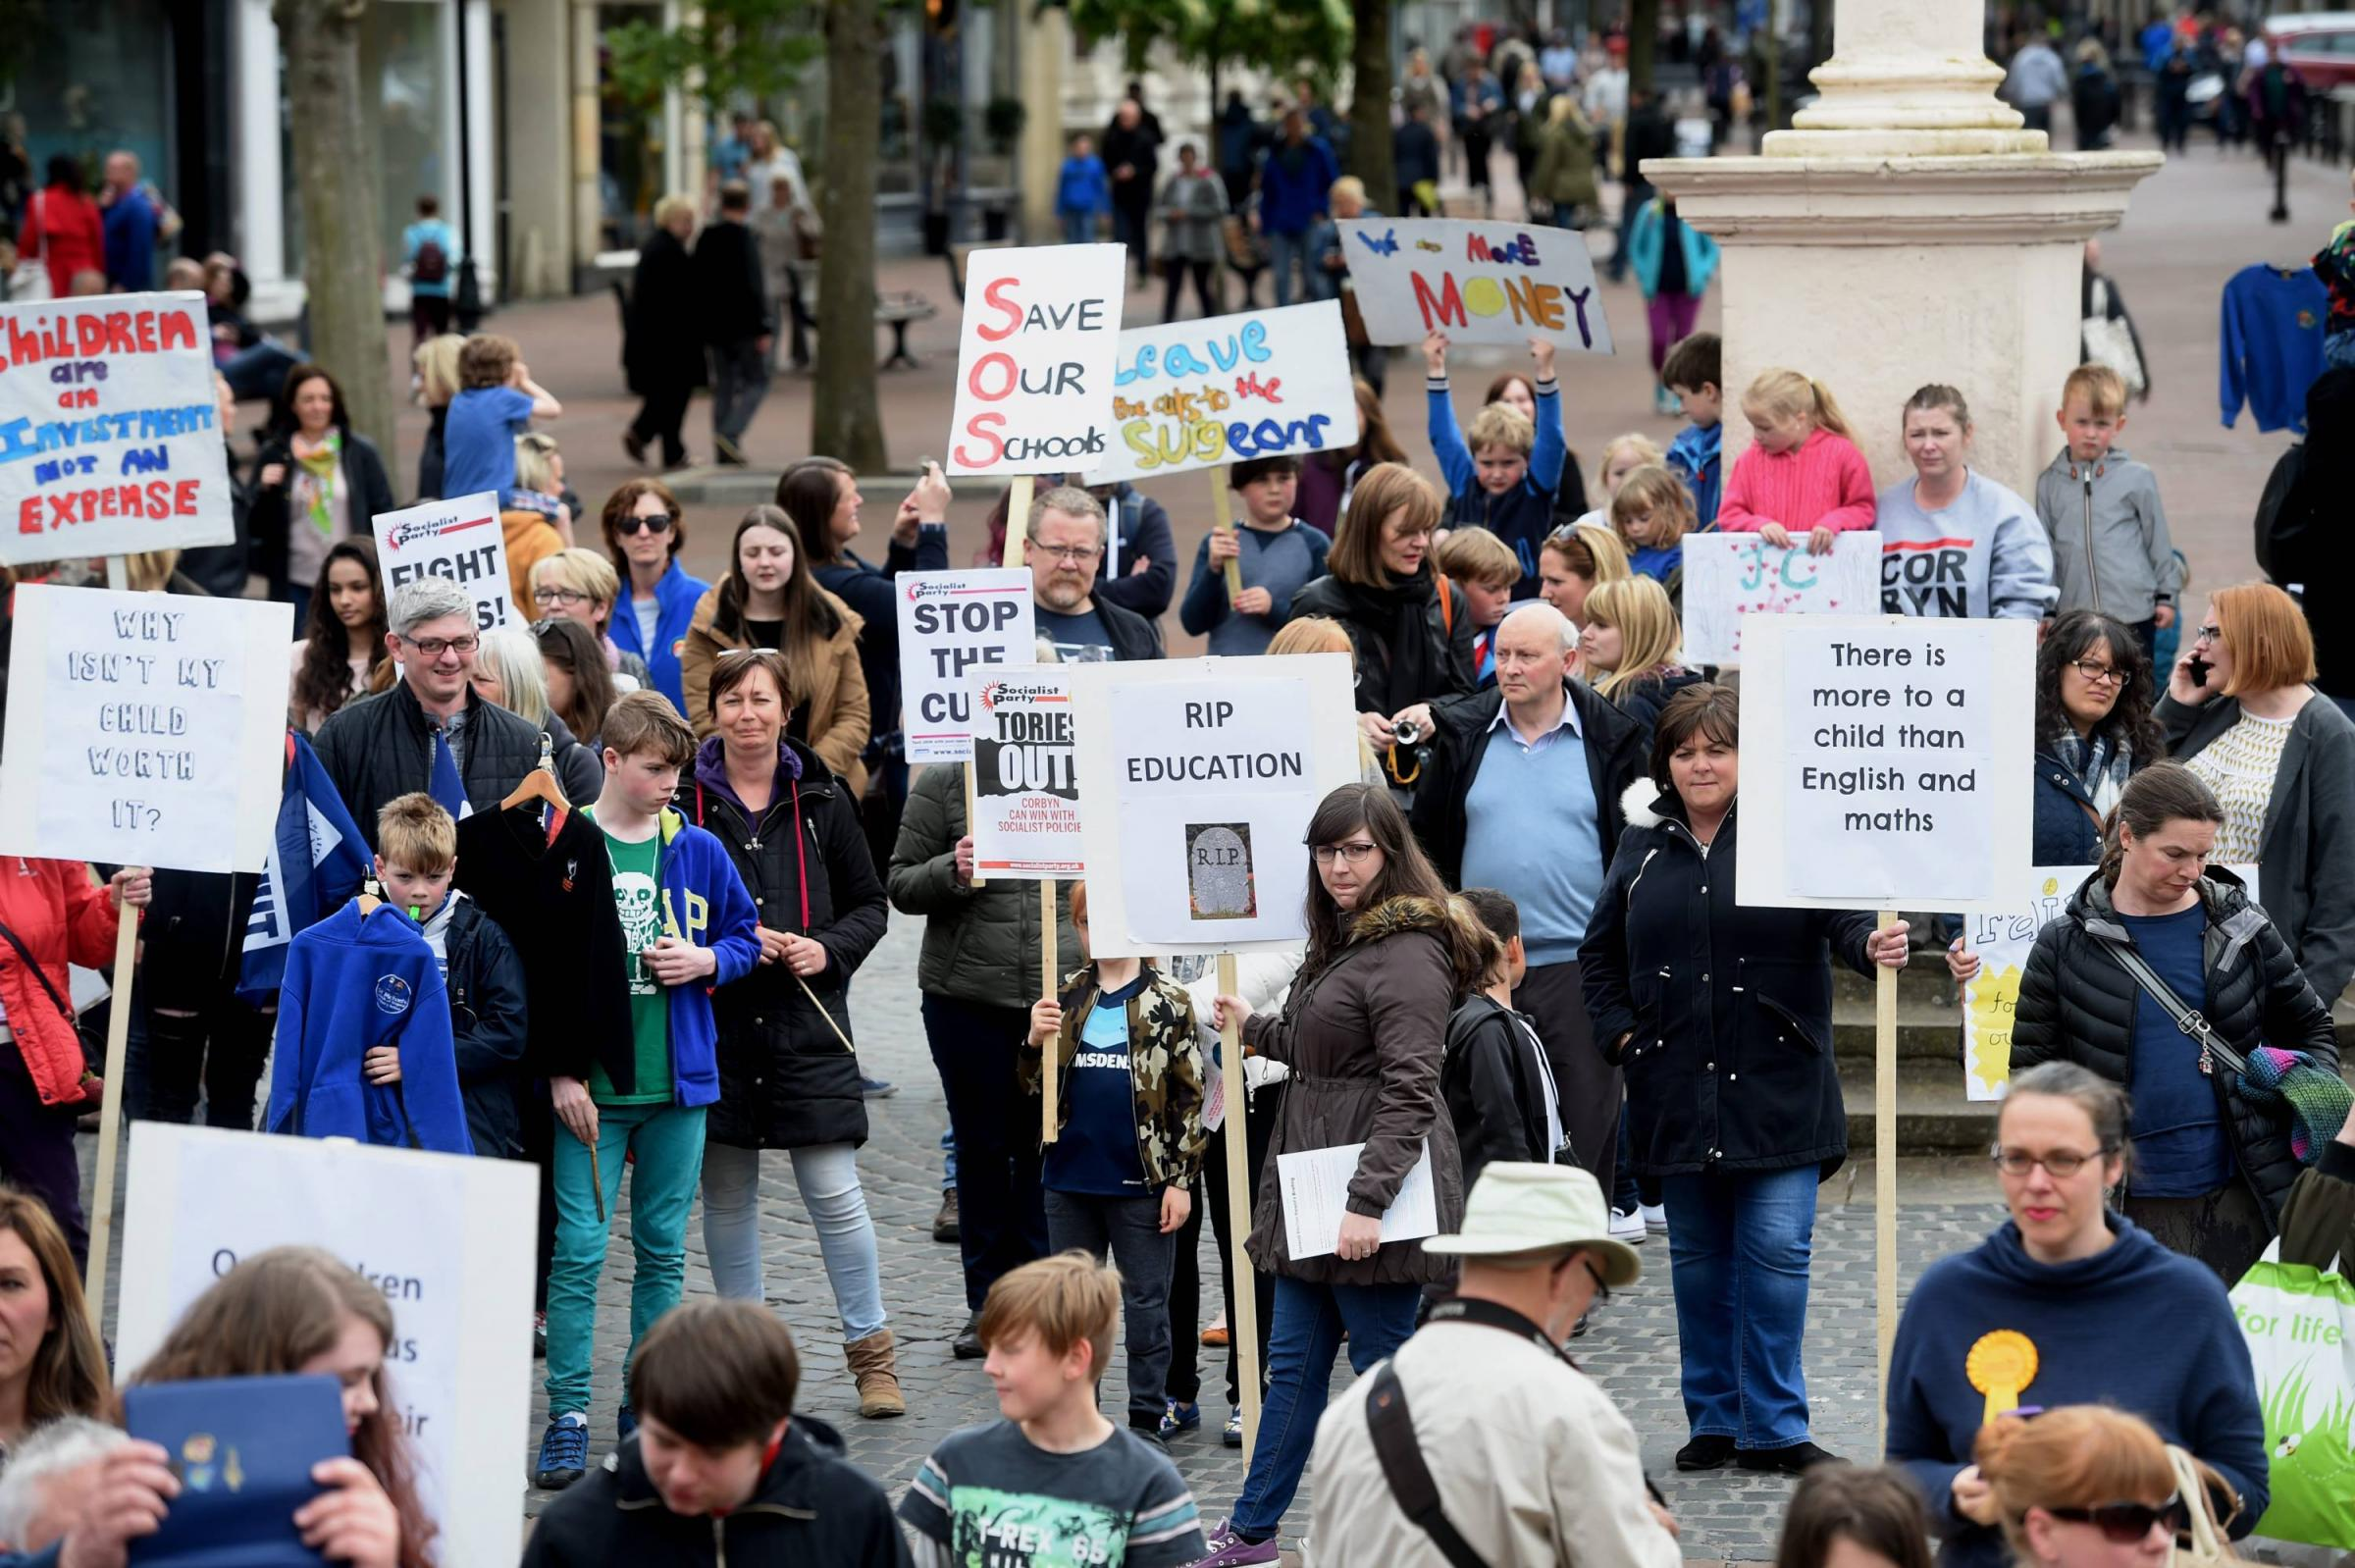 Education funding protest. A protest rally in Carlisle City Centre highlighting the school funding crisis: 21 May 2017